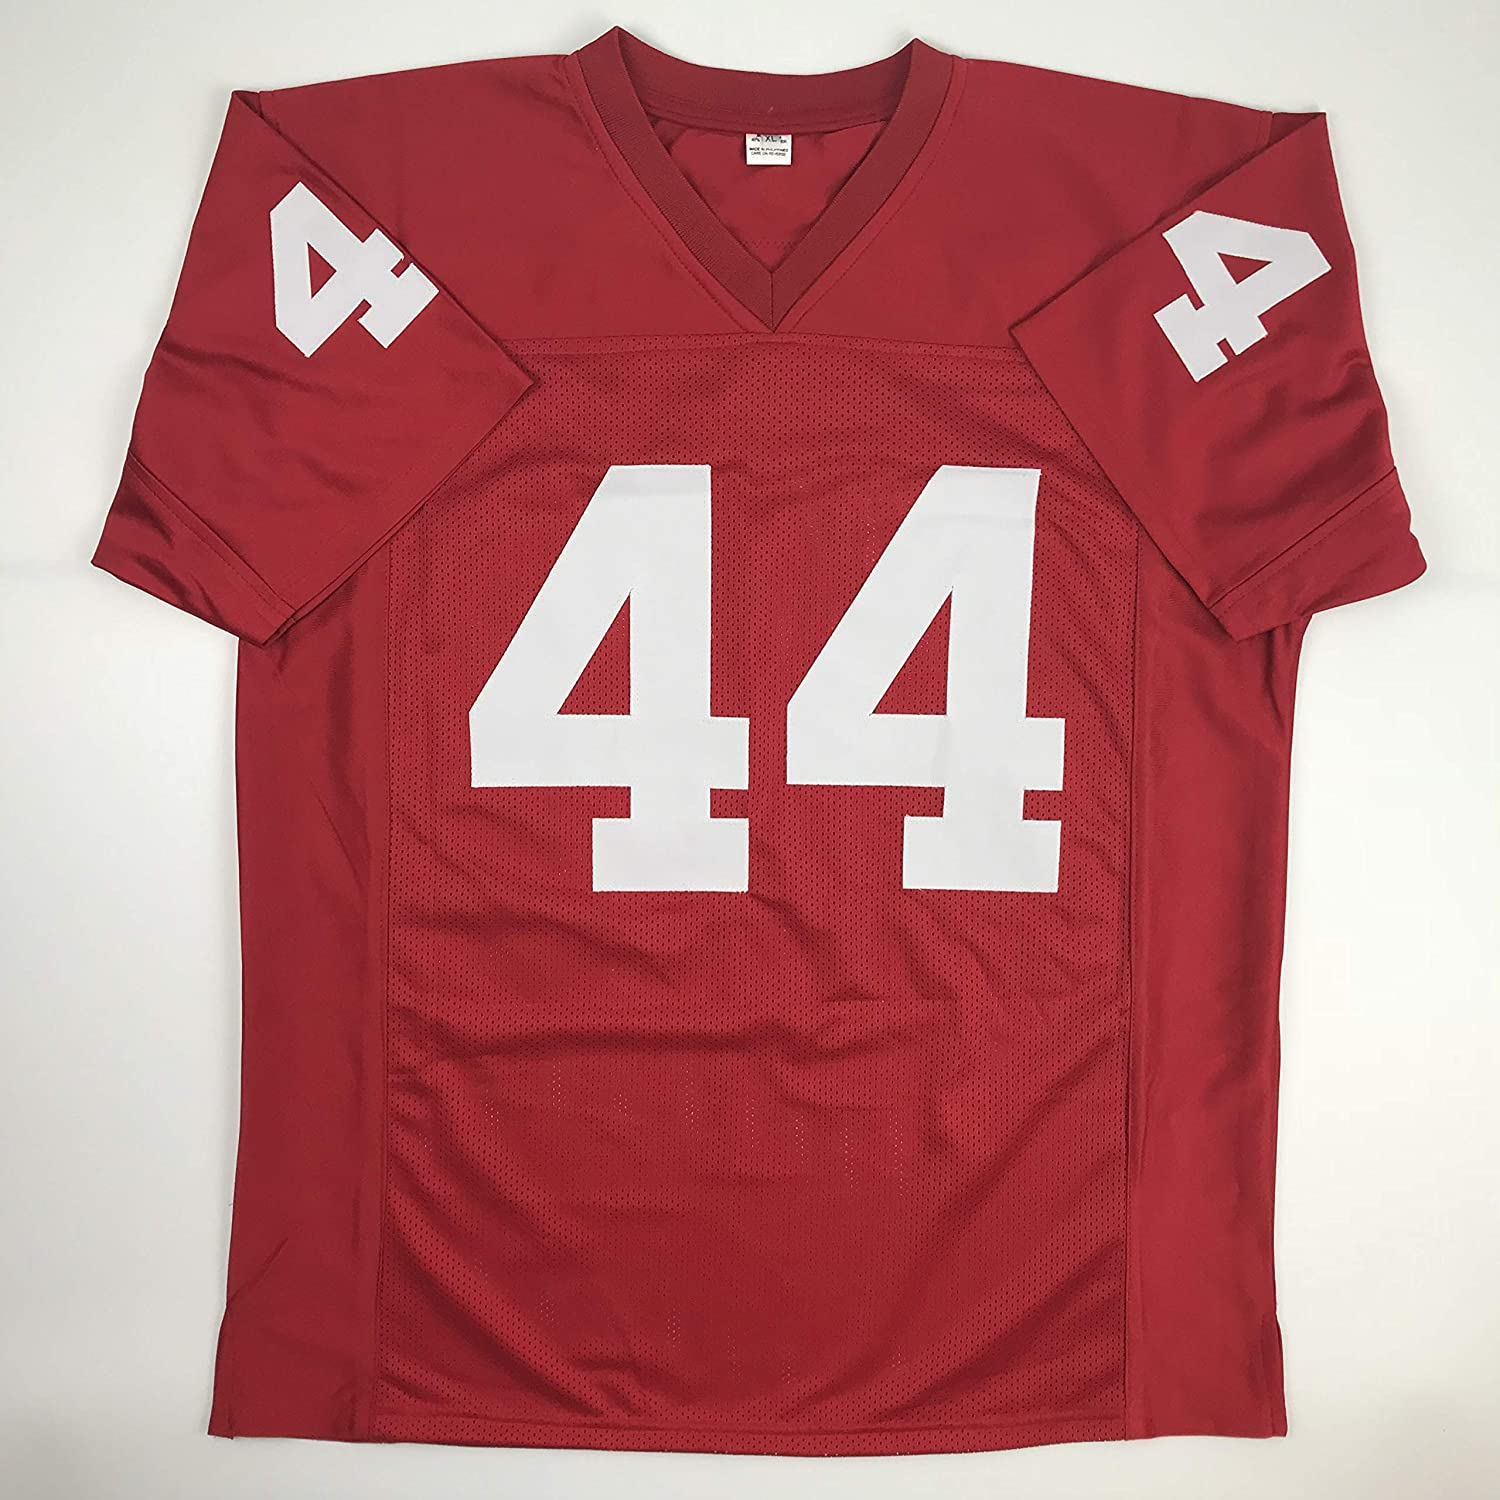 new arrival d9ae1 882d3 Amazon.com: Unsigned Forrest Gump Alabama Maroon Custom ...